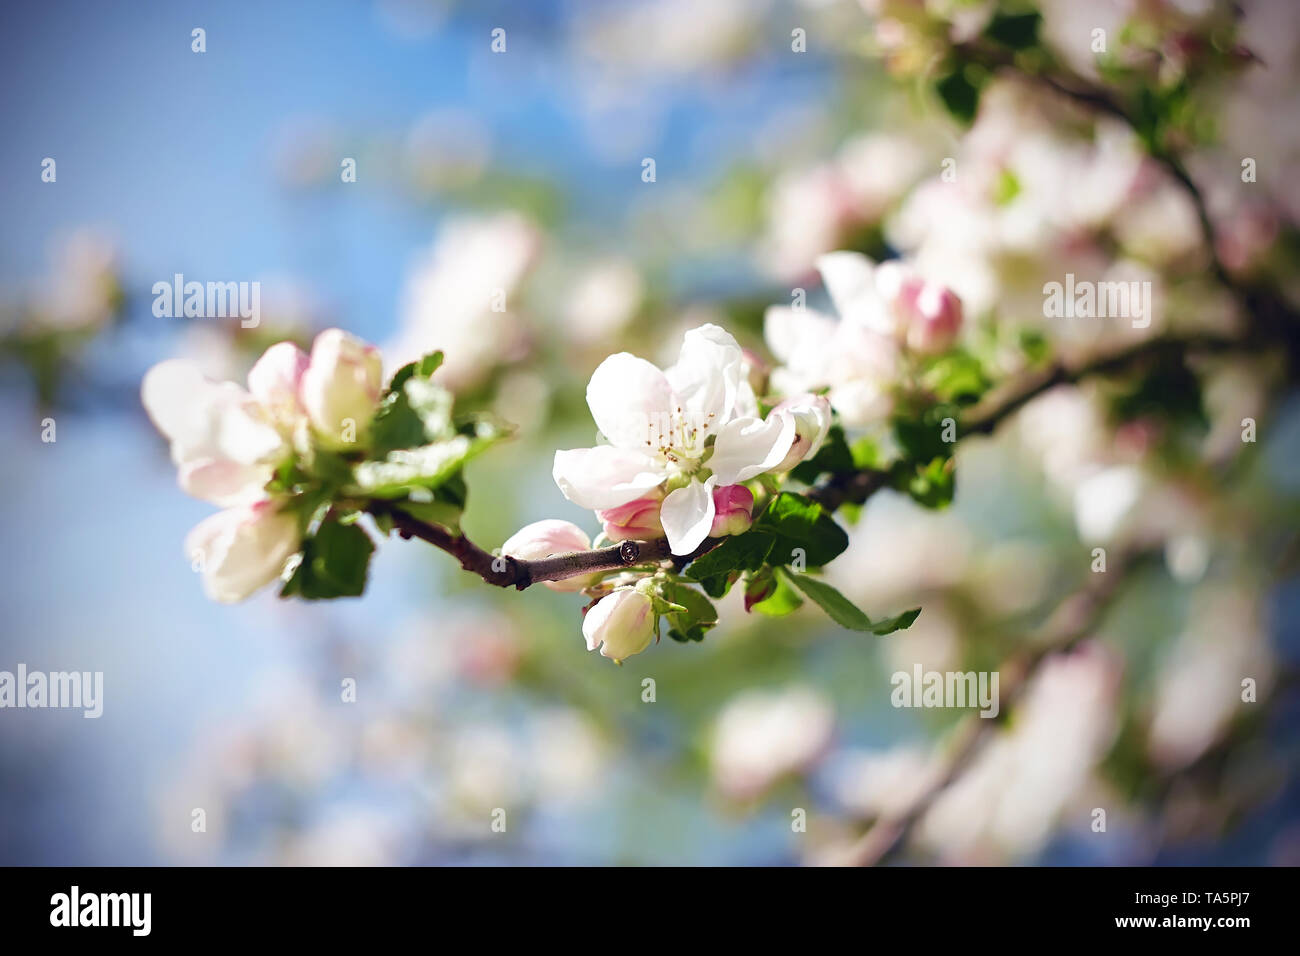 In spring, the branches of the Apple blossoming white and pink delicate beautiful flowers, illuminated by bright sunlight. - Stock Image